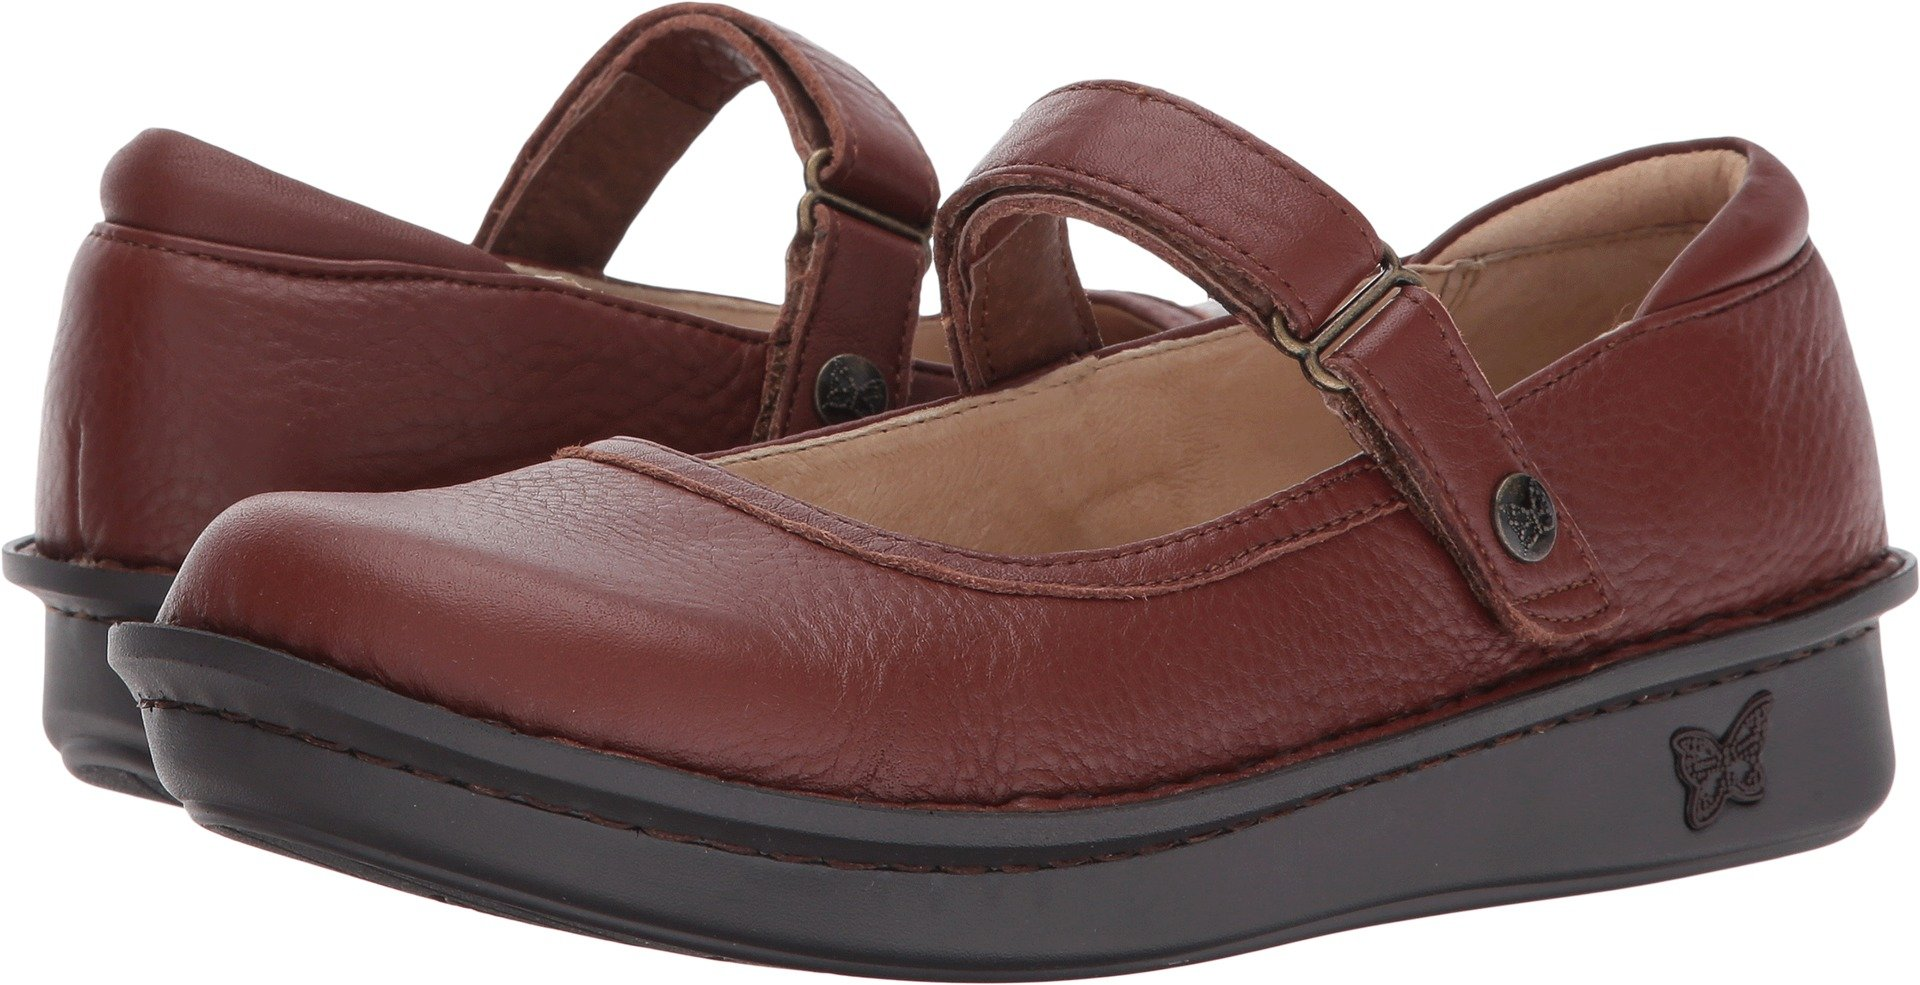 Alegria Women's Belle Mary Jane Flat, Pecan, 39 M EU